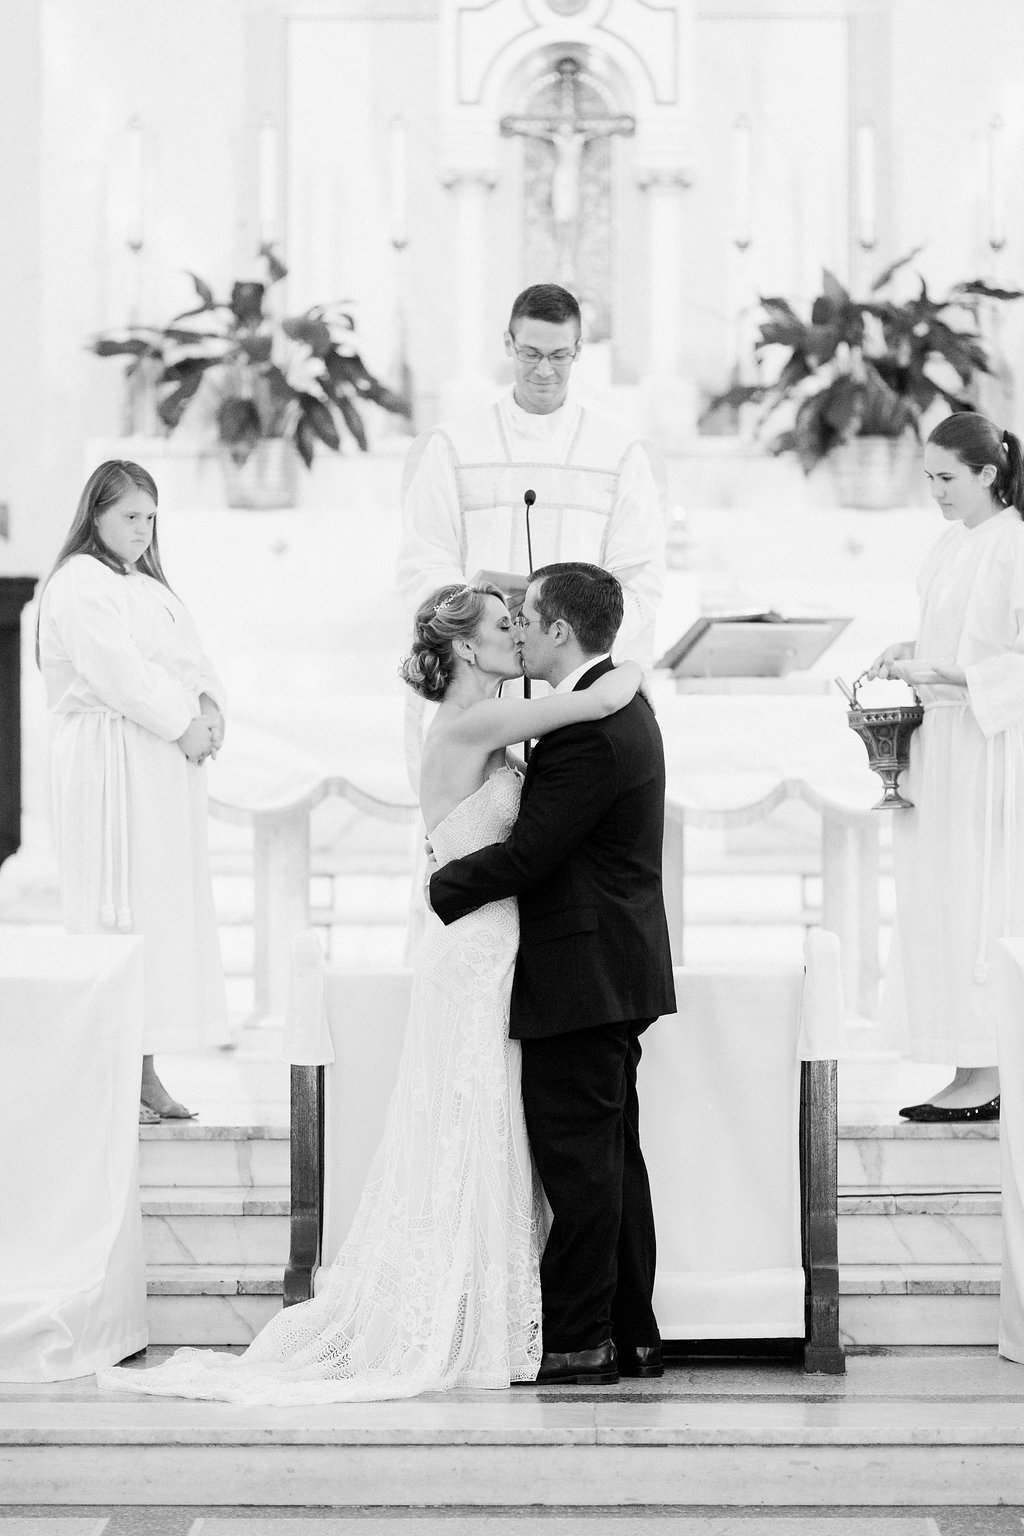 Bride and Groom first kiss at ceremony - 1920's inspired wedding Grand Concourse